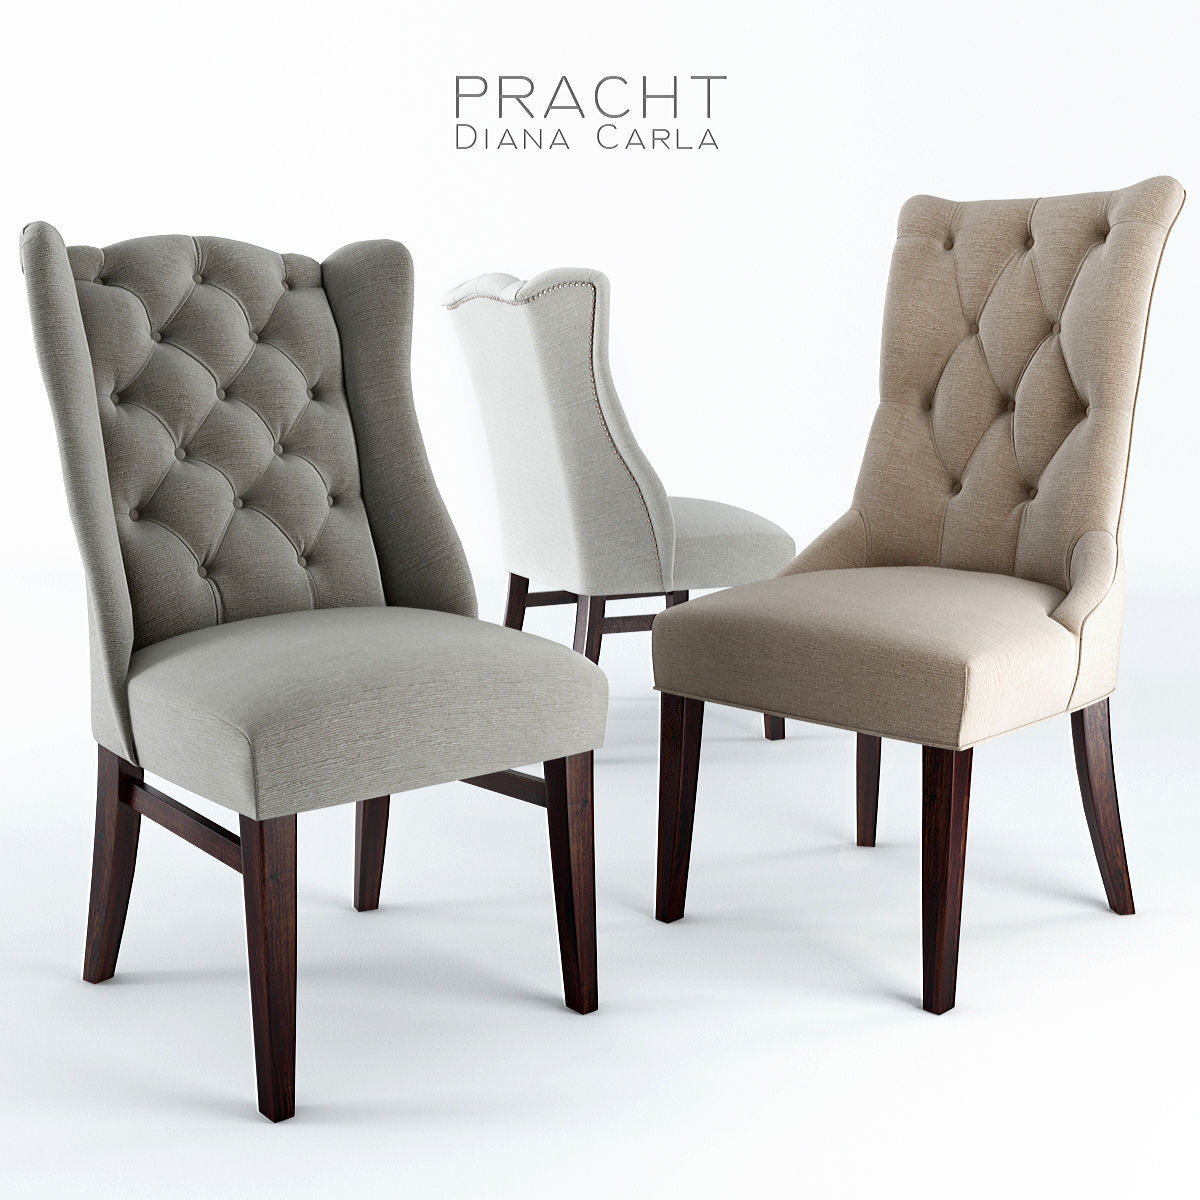 Chairs Pracht Diana and Carla